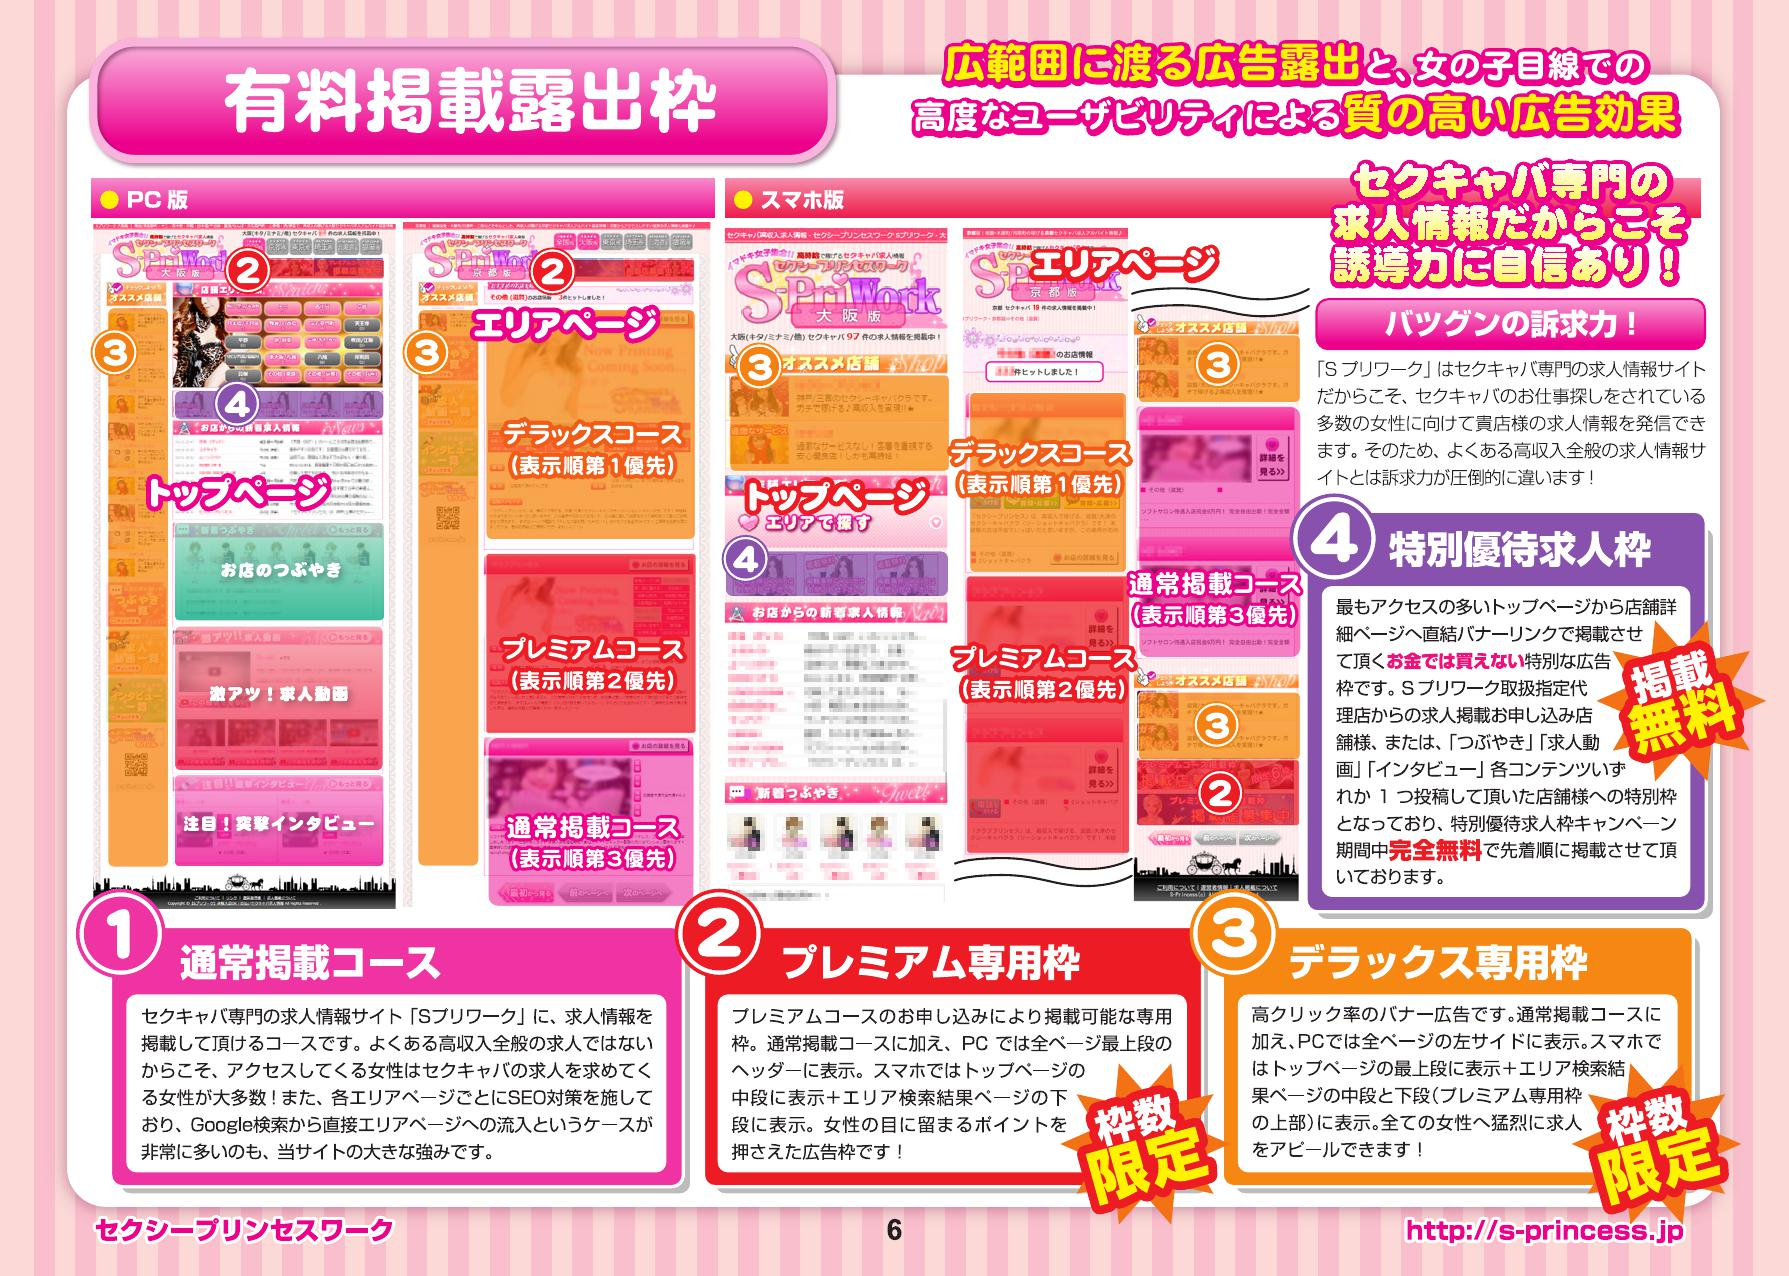 【Sプリワーク】 体験入店OK!日払いセクキャバ求人バイト情報